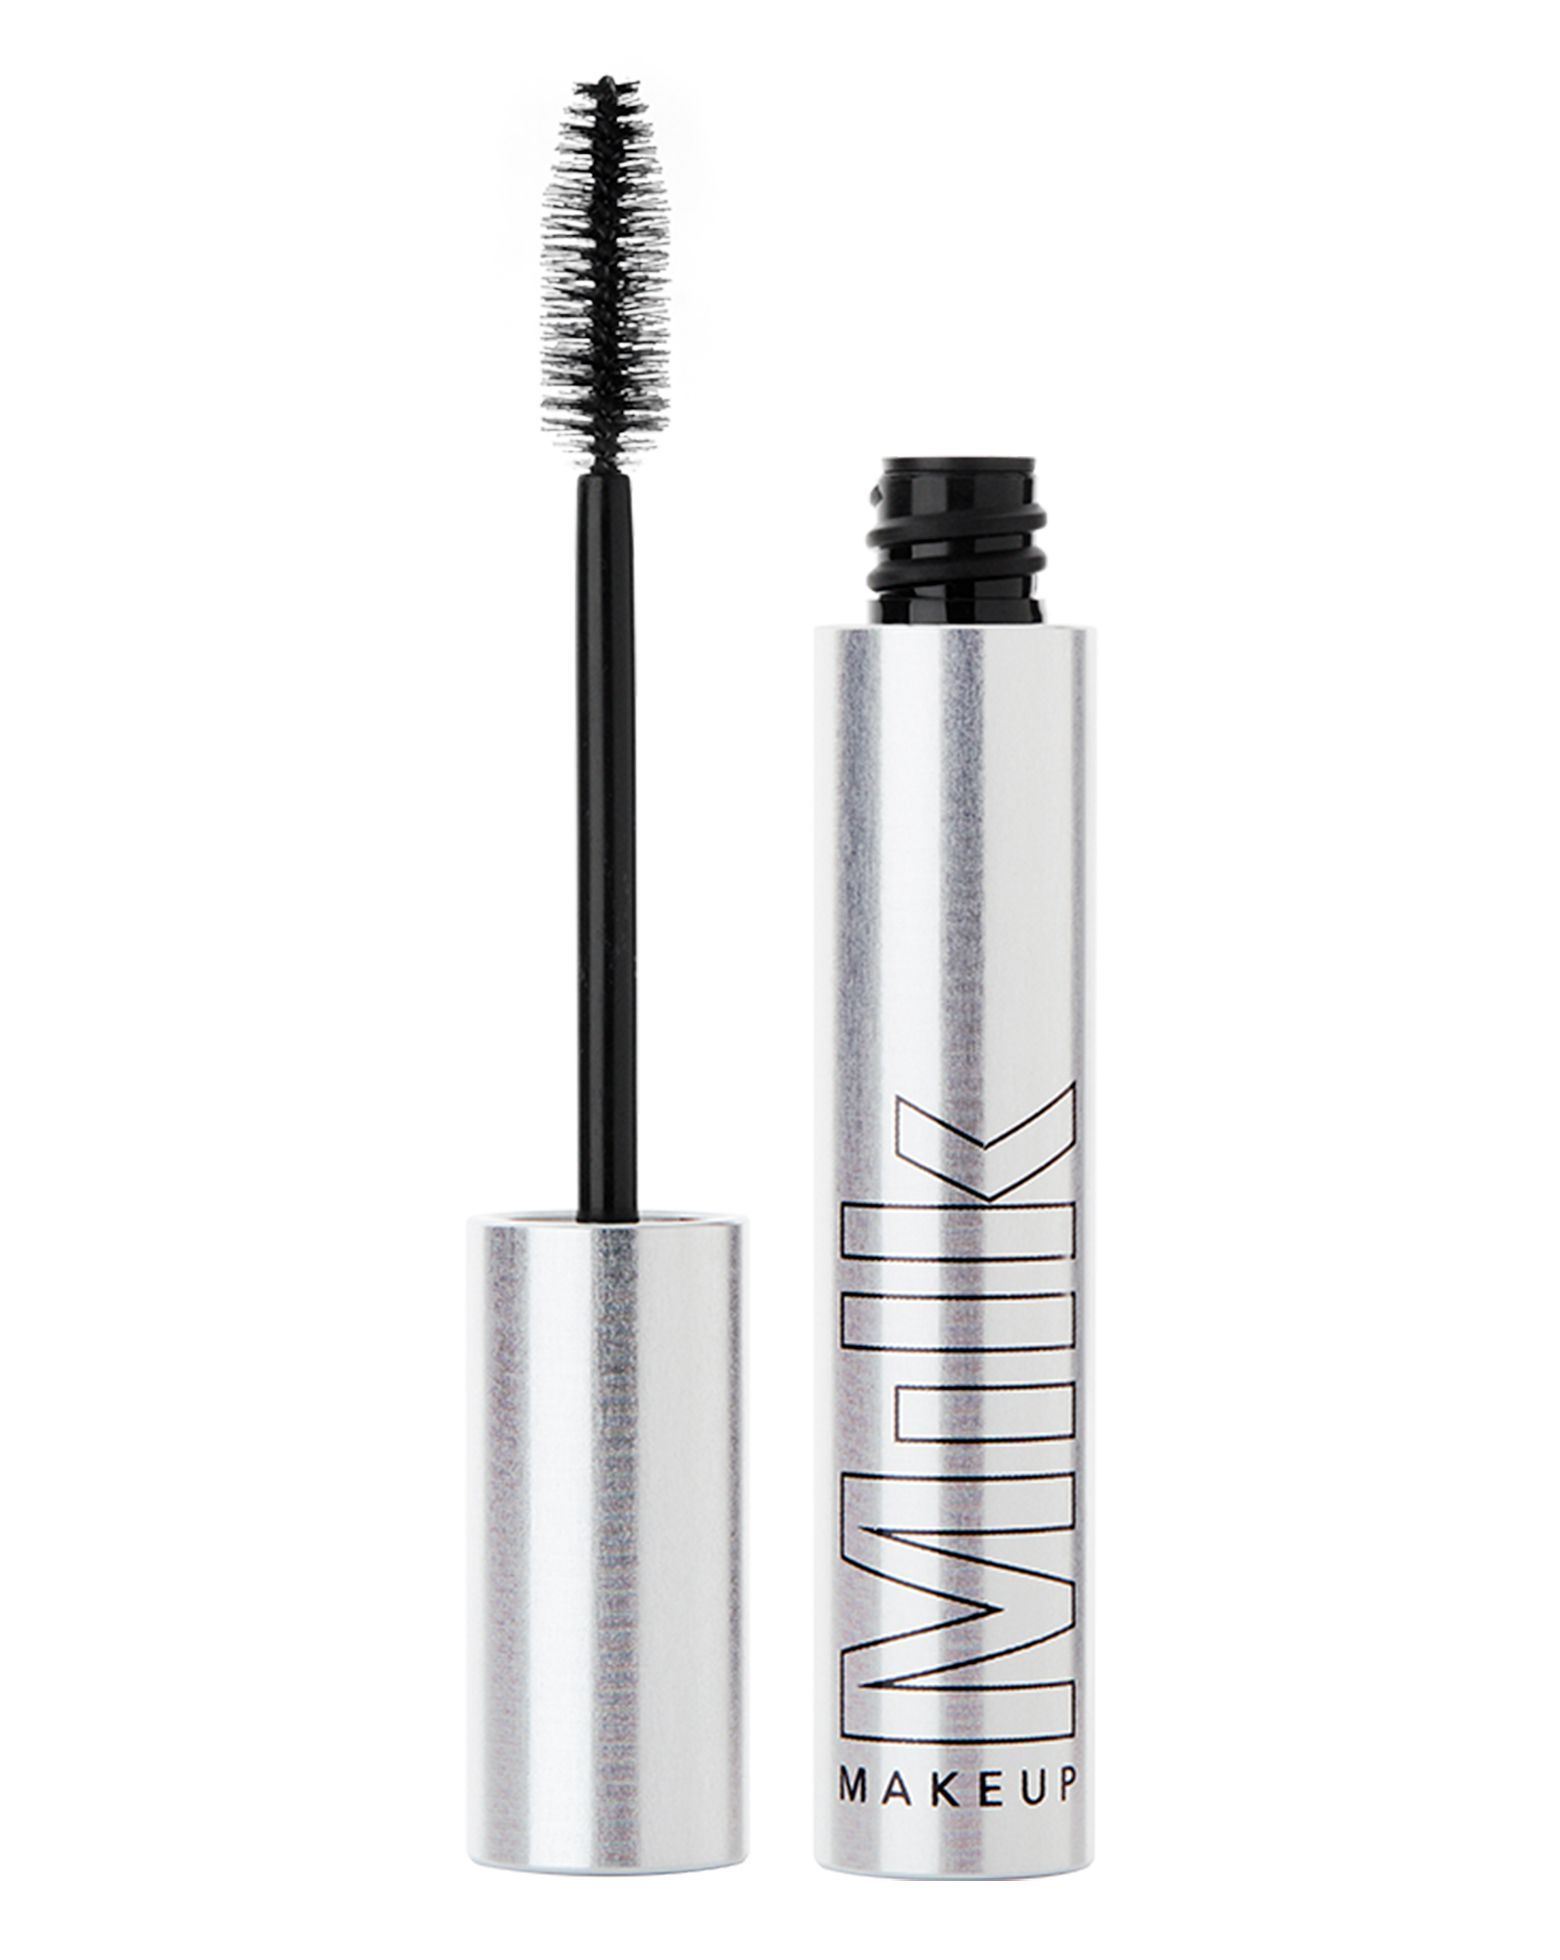 Milk Makeup KUSH High Volume Mascara in 2020 Milk